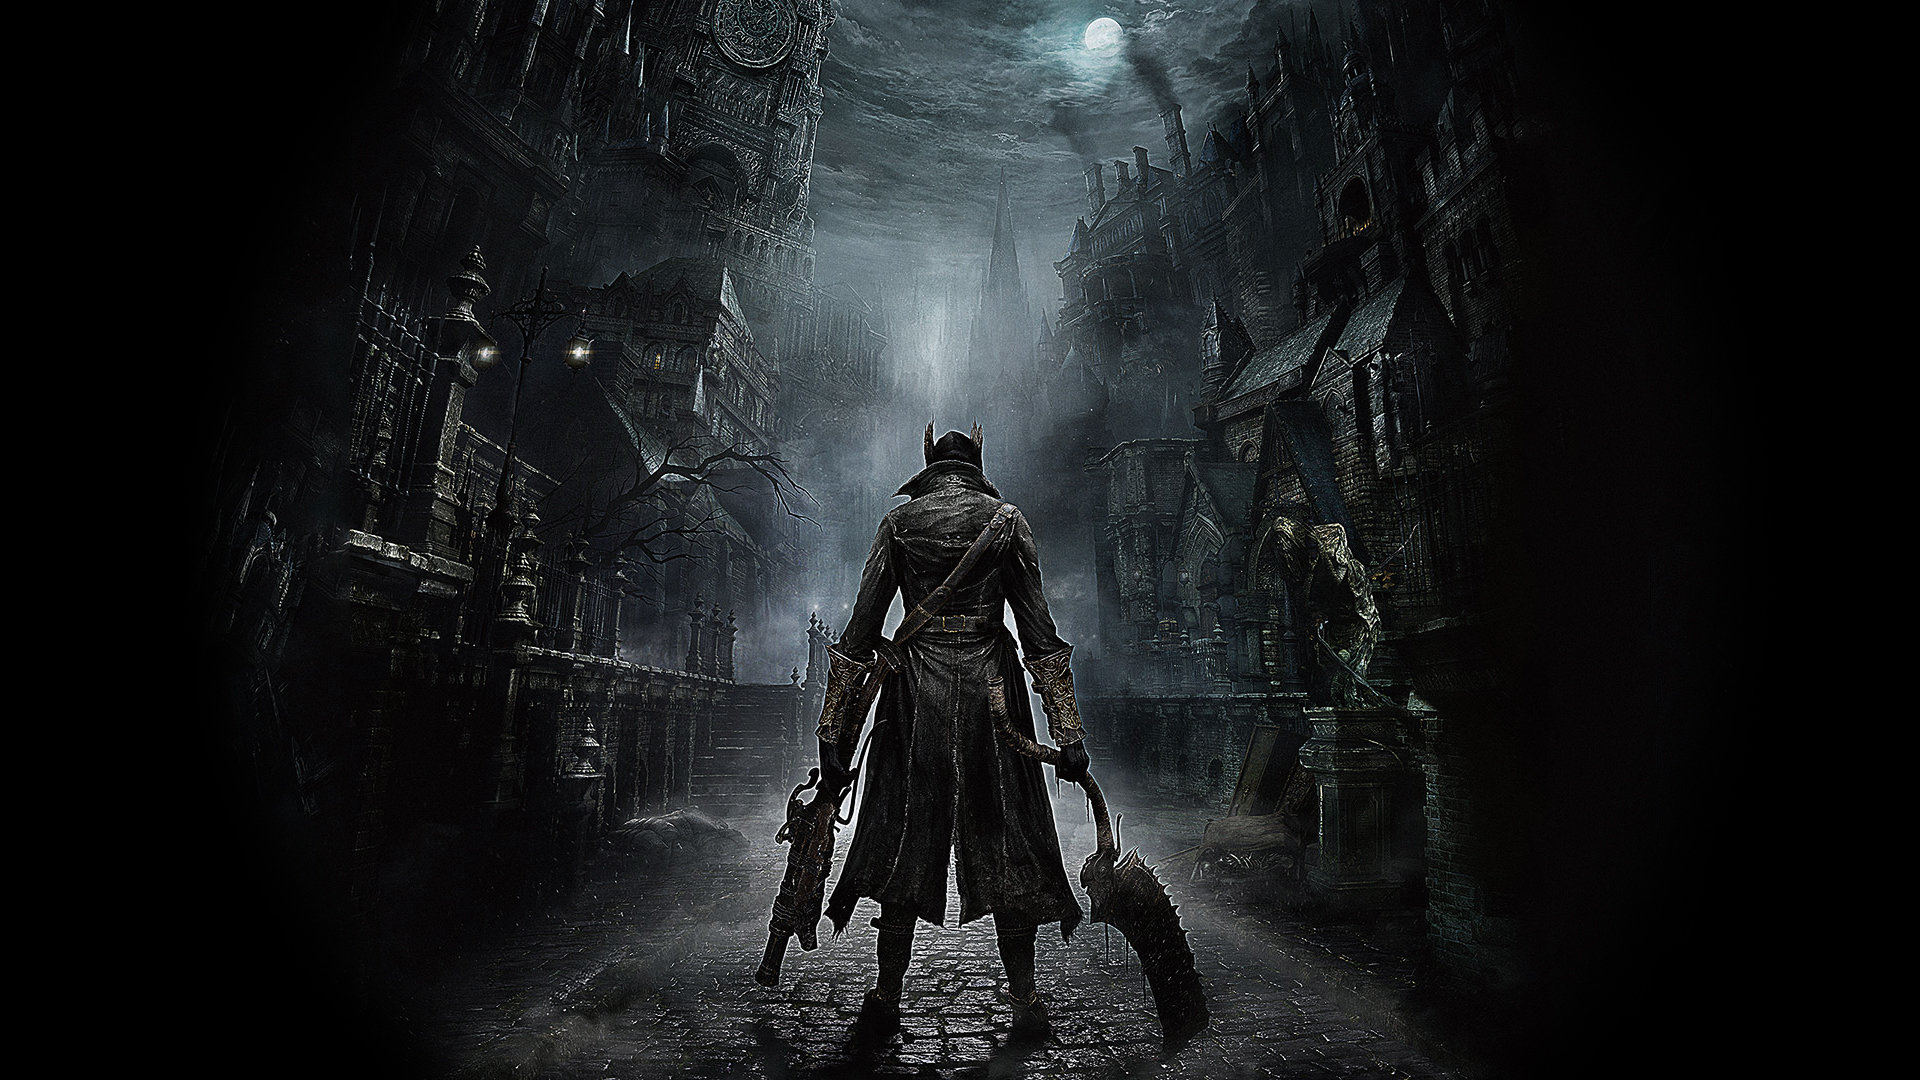 Bloodborne wallpapers 1920x1080 Full HD 1080p desktop backgrounds 1920x1080